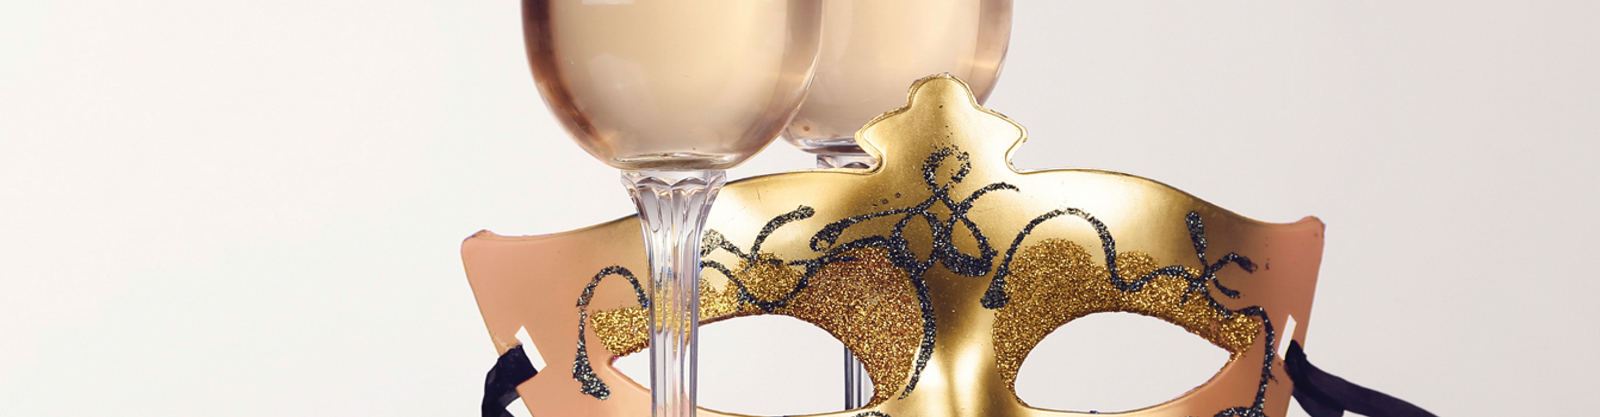 Carnival mask and glasses with champagne  on white background